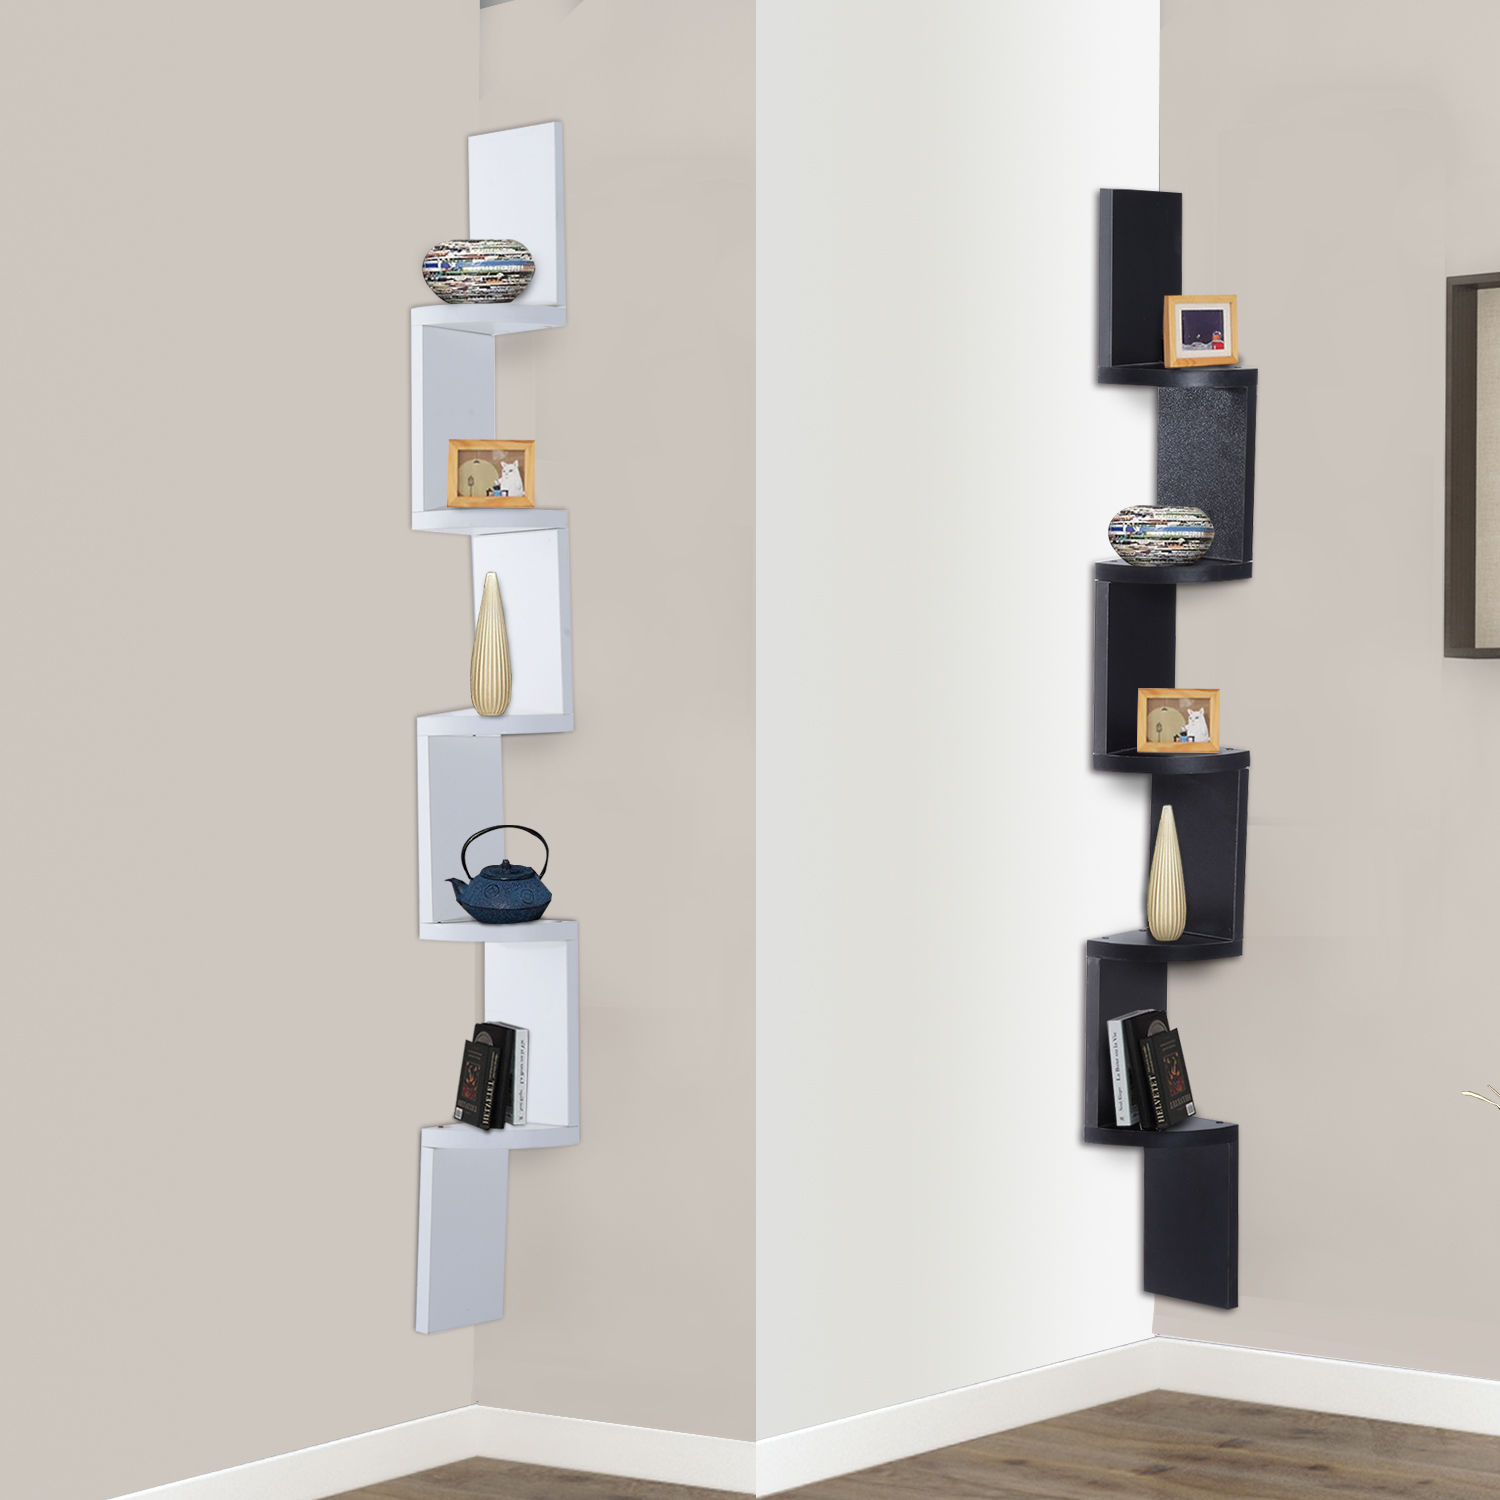 shelves remodel vogt adjustable wall mounted com depot shelving homely ishlepark mount design home exquisite to charming knape ideas shelf winsome